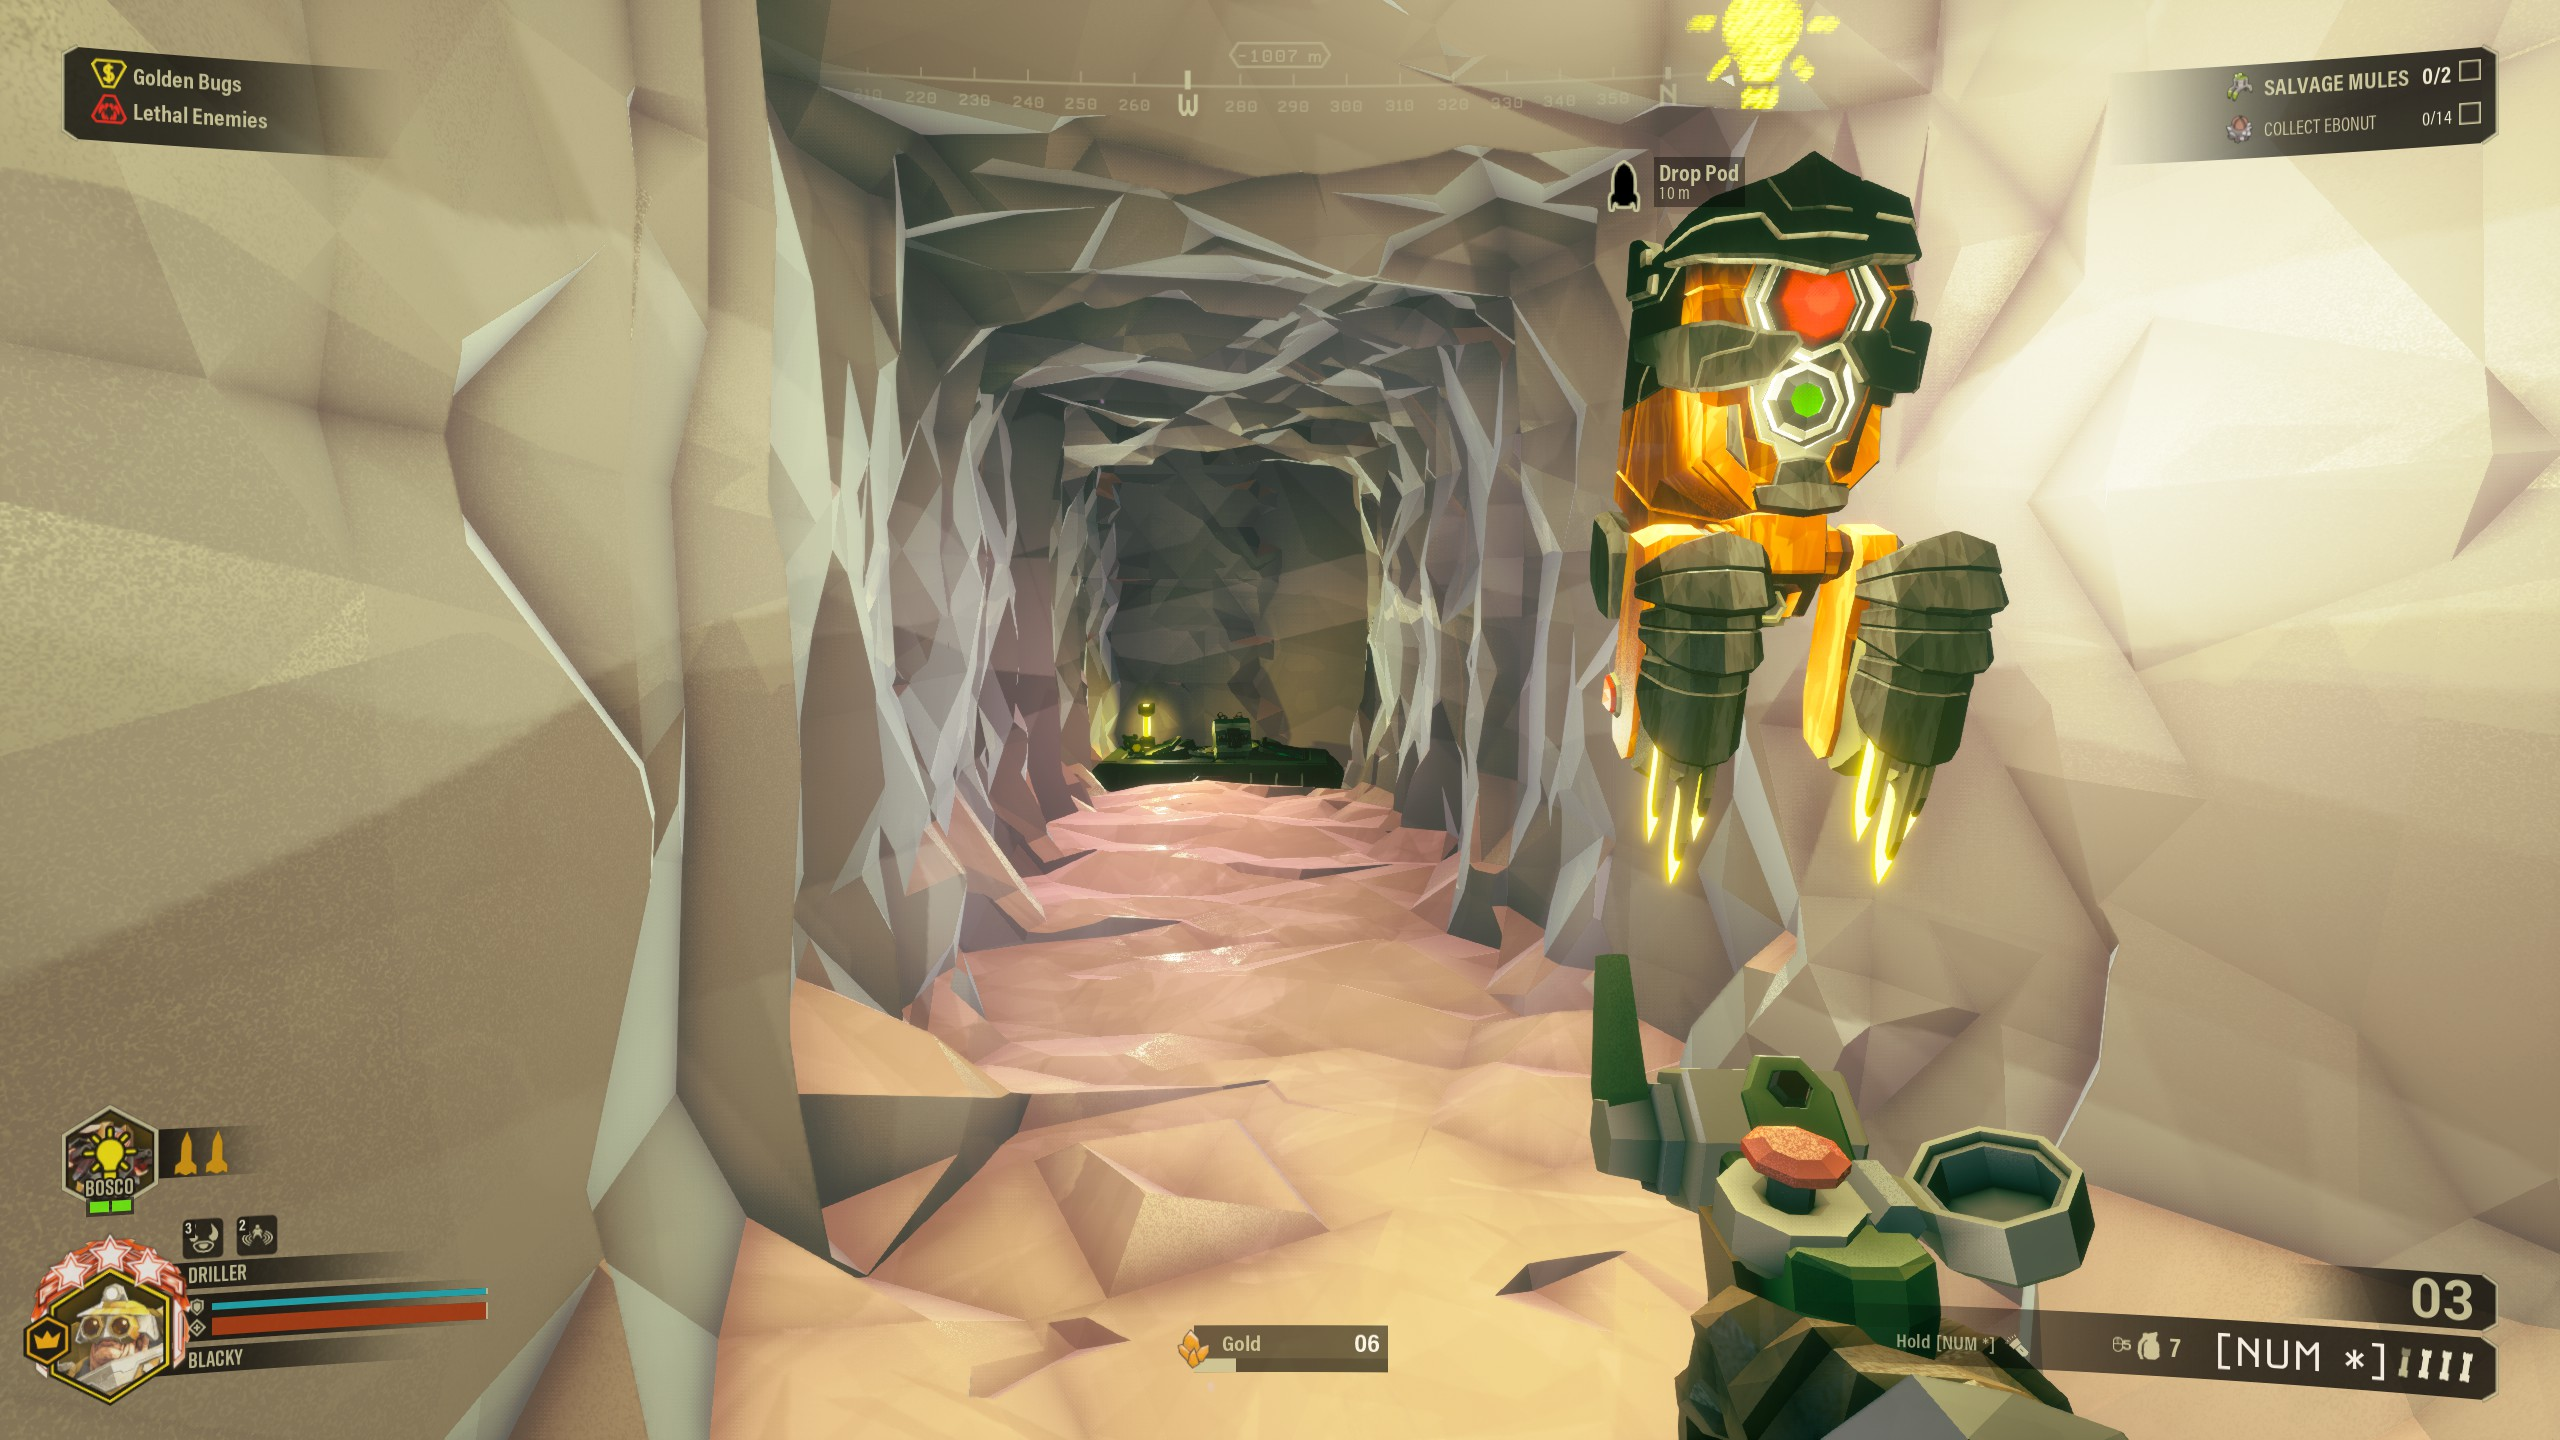 Deep Rock Galactic - Best Strategy for Building Bunker in Game - Bunker for a salvage operation - C01E6EB